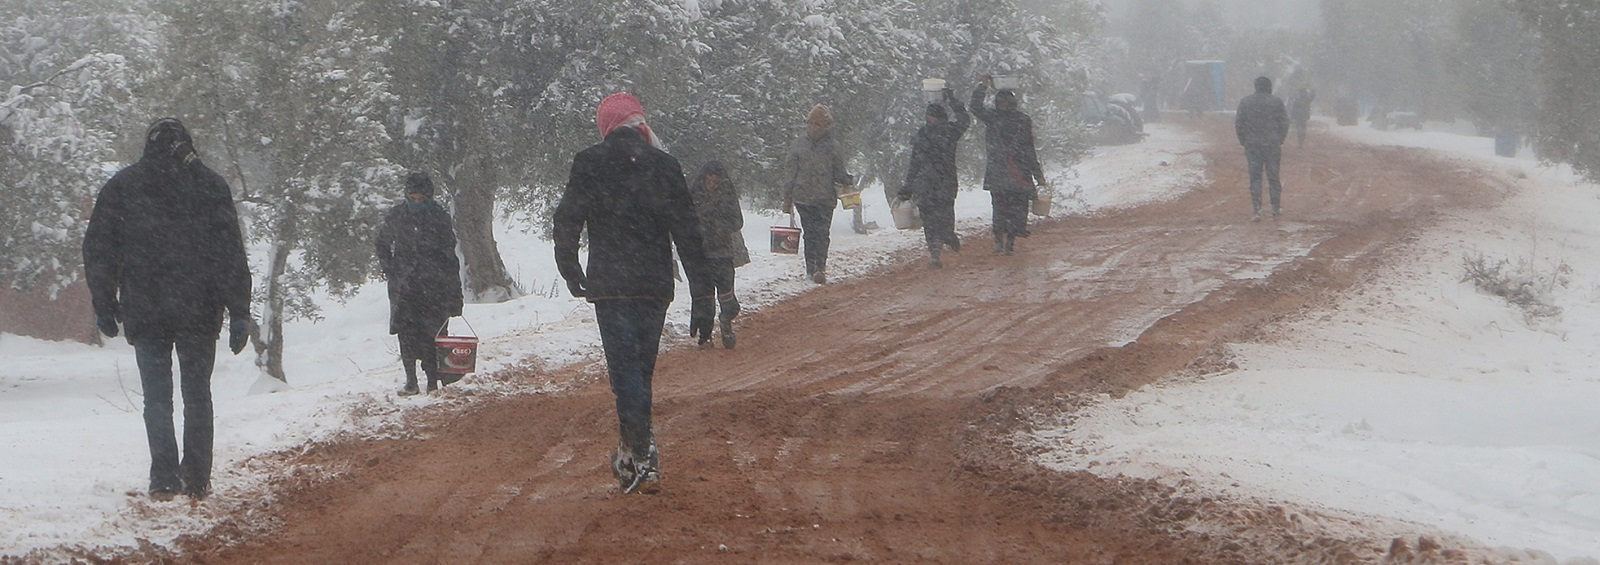 Syrians collect food aid amid snow in Aleppo (Photo: Mamun Ebu Omer/Getty Images)